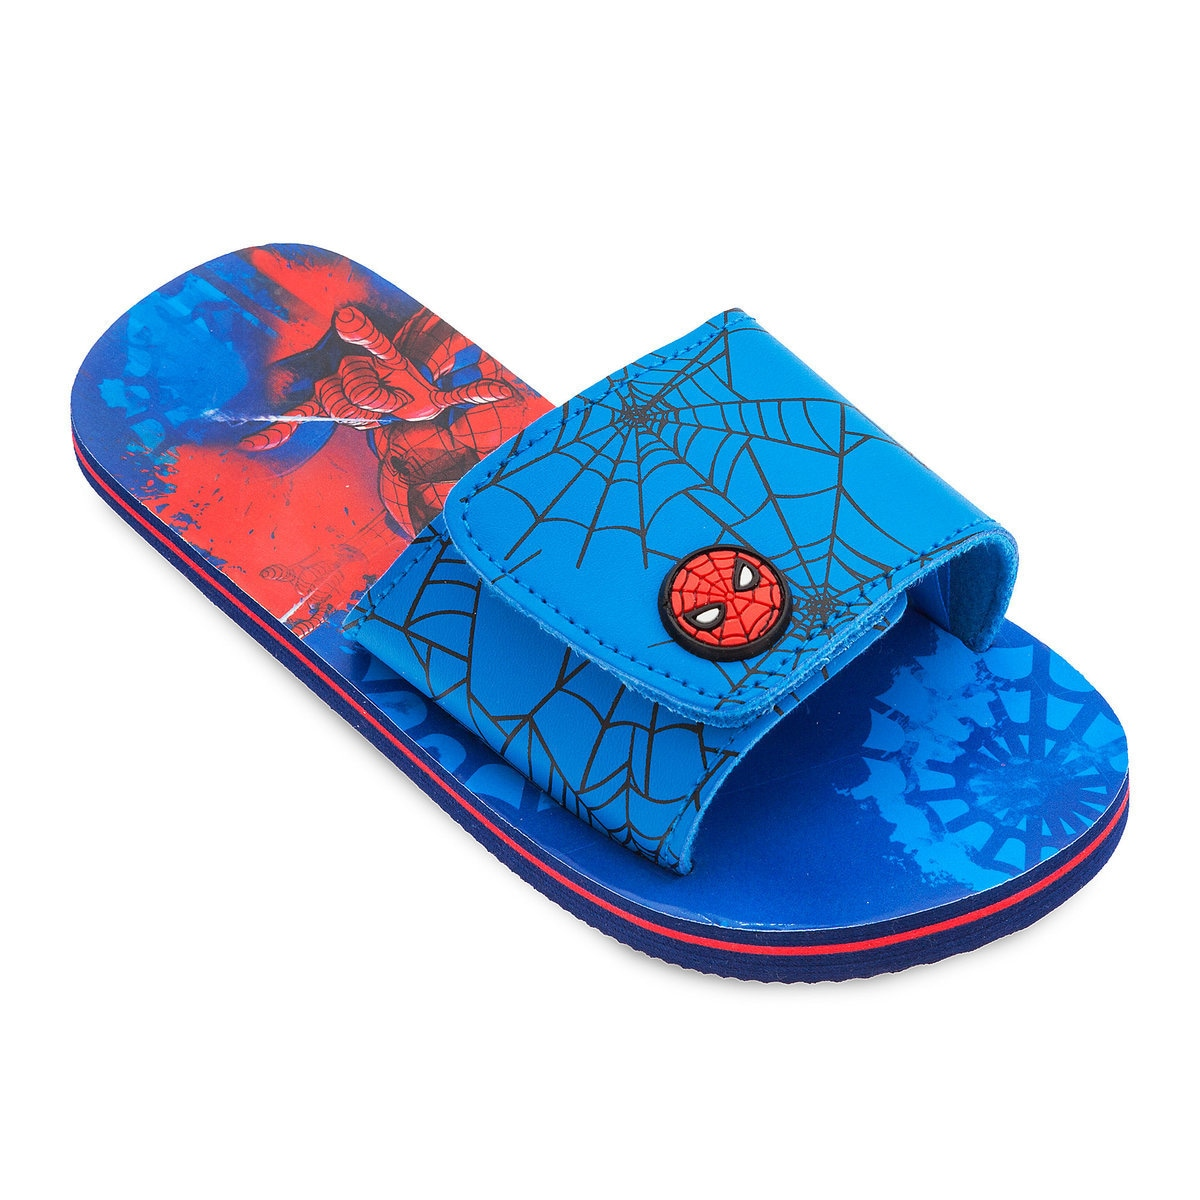 1c19010e7b5 Product Image of Spider-Man Sandals for Kids   1